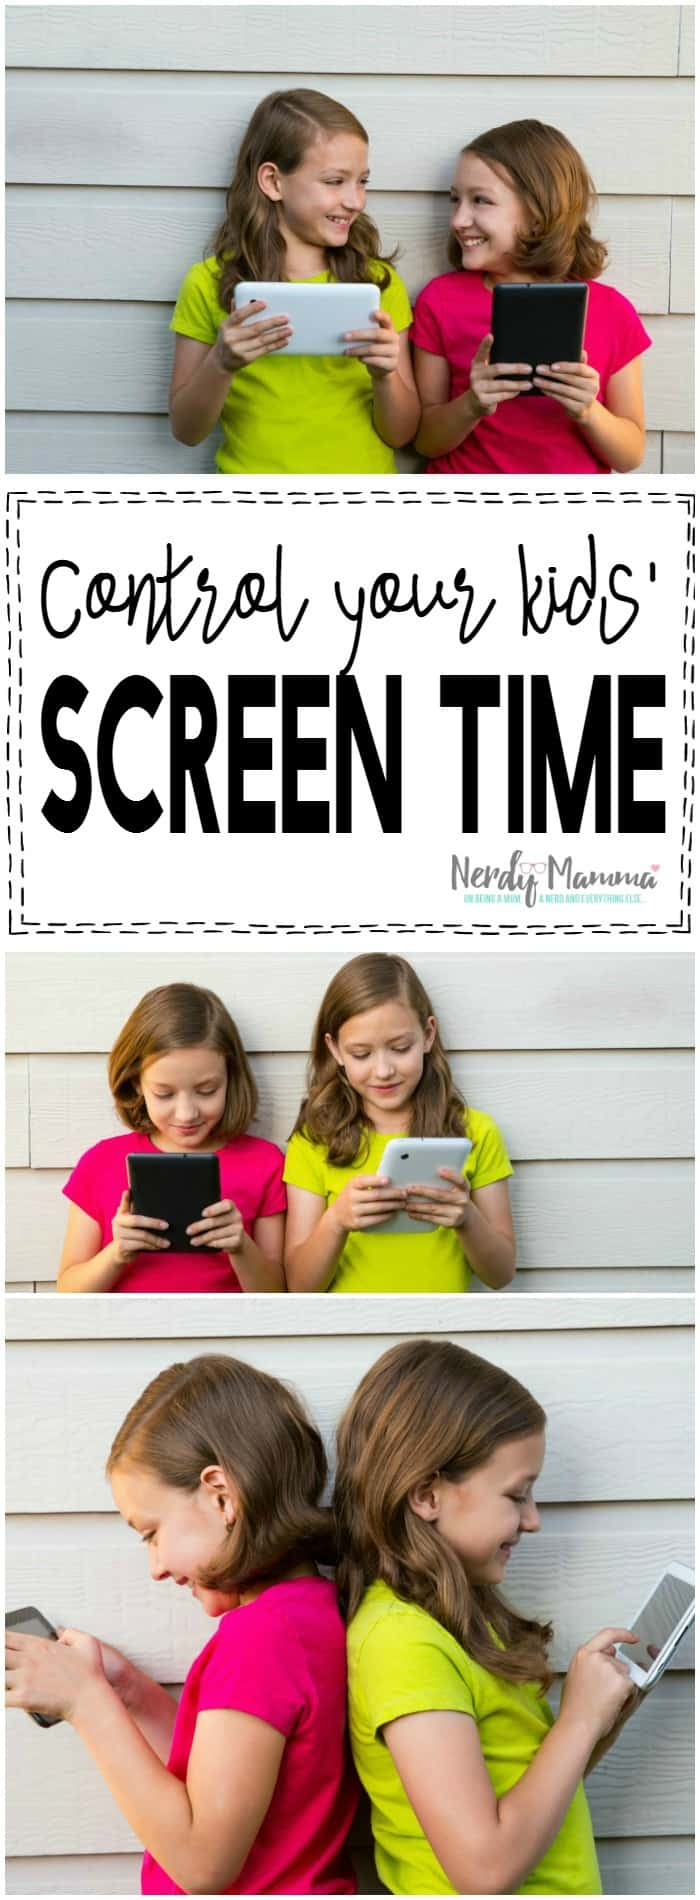 This is a genius way to get some control over my kids' screen time. Now I don't have to worry about what they're looking at on the tablet.